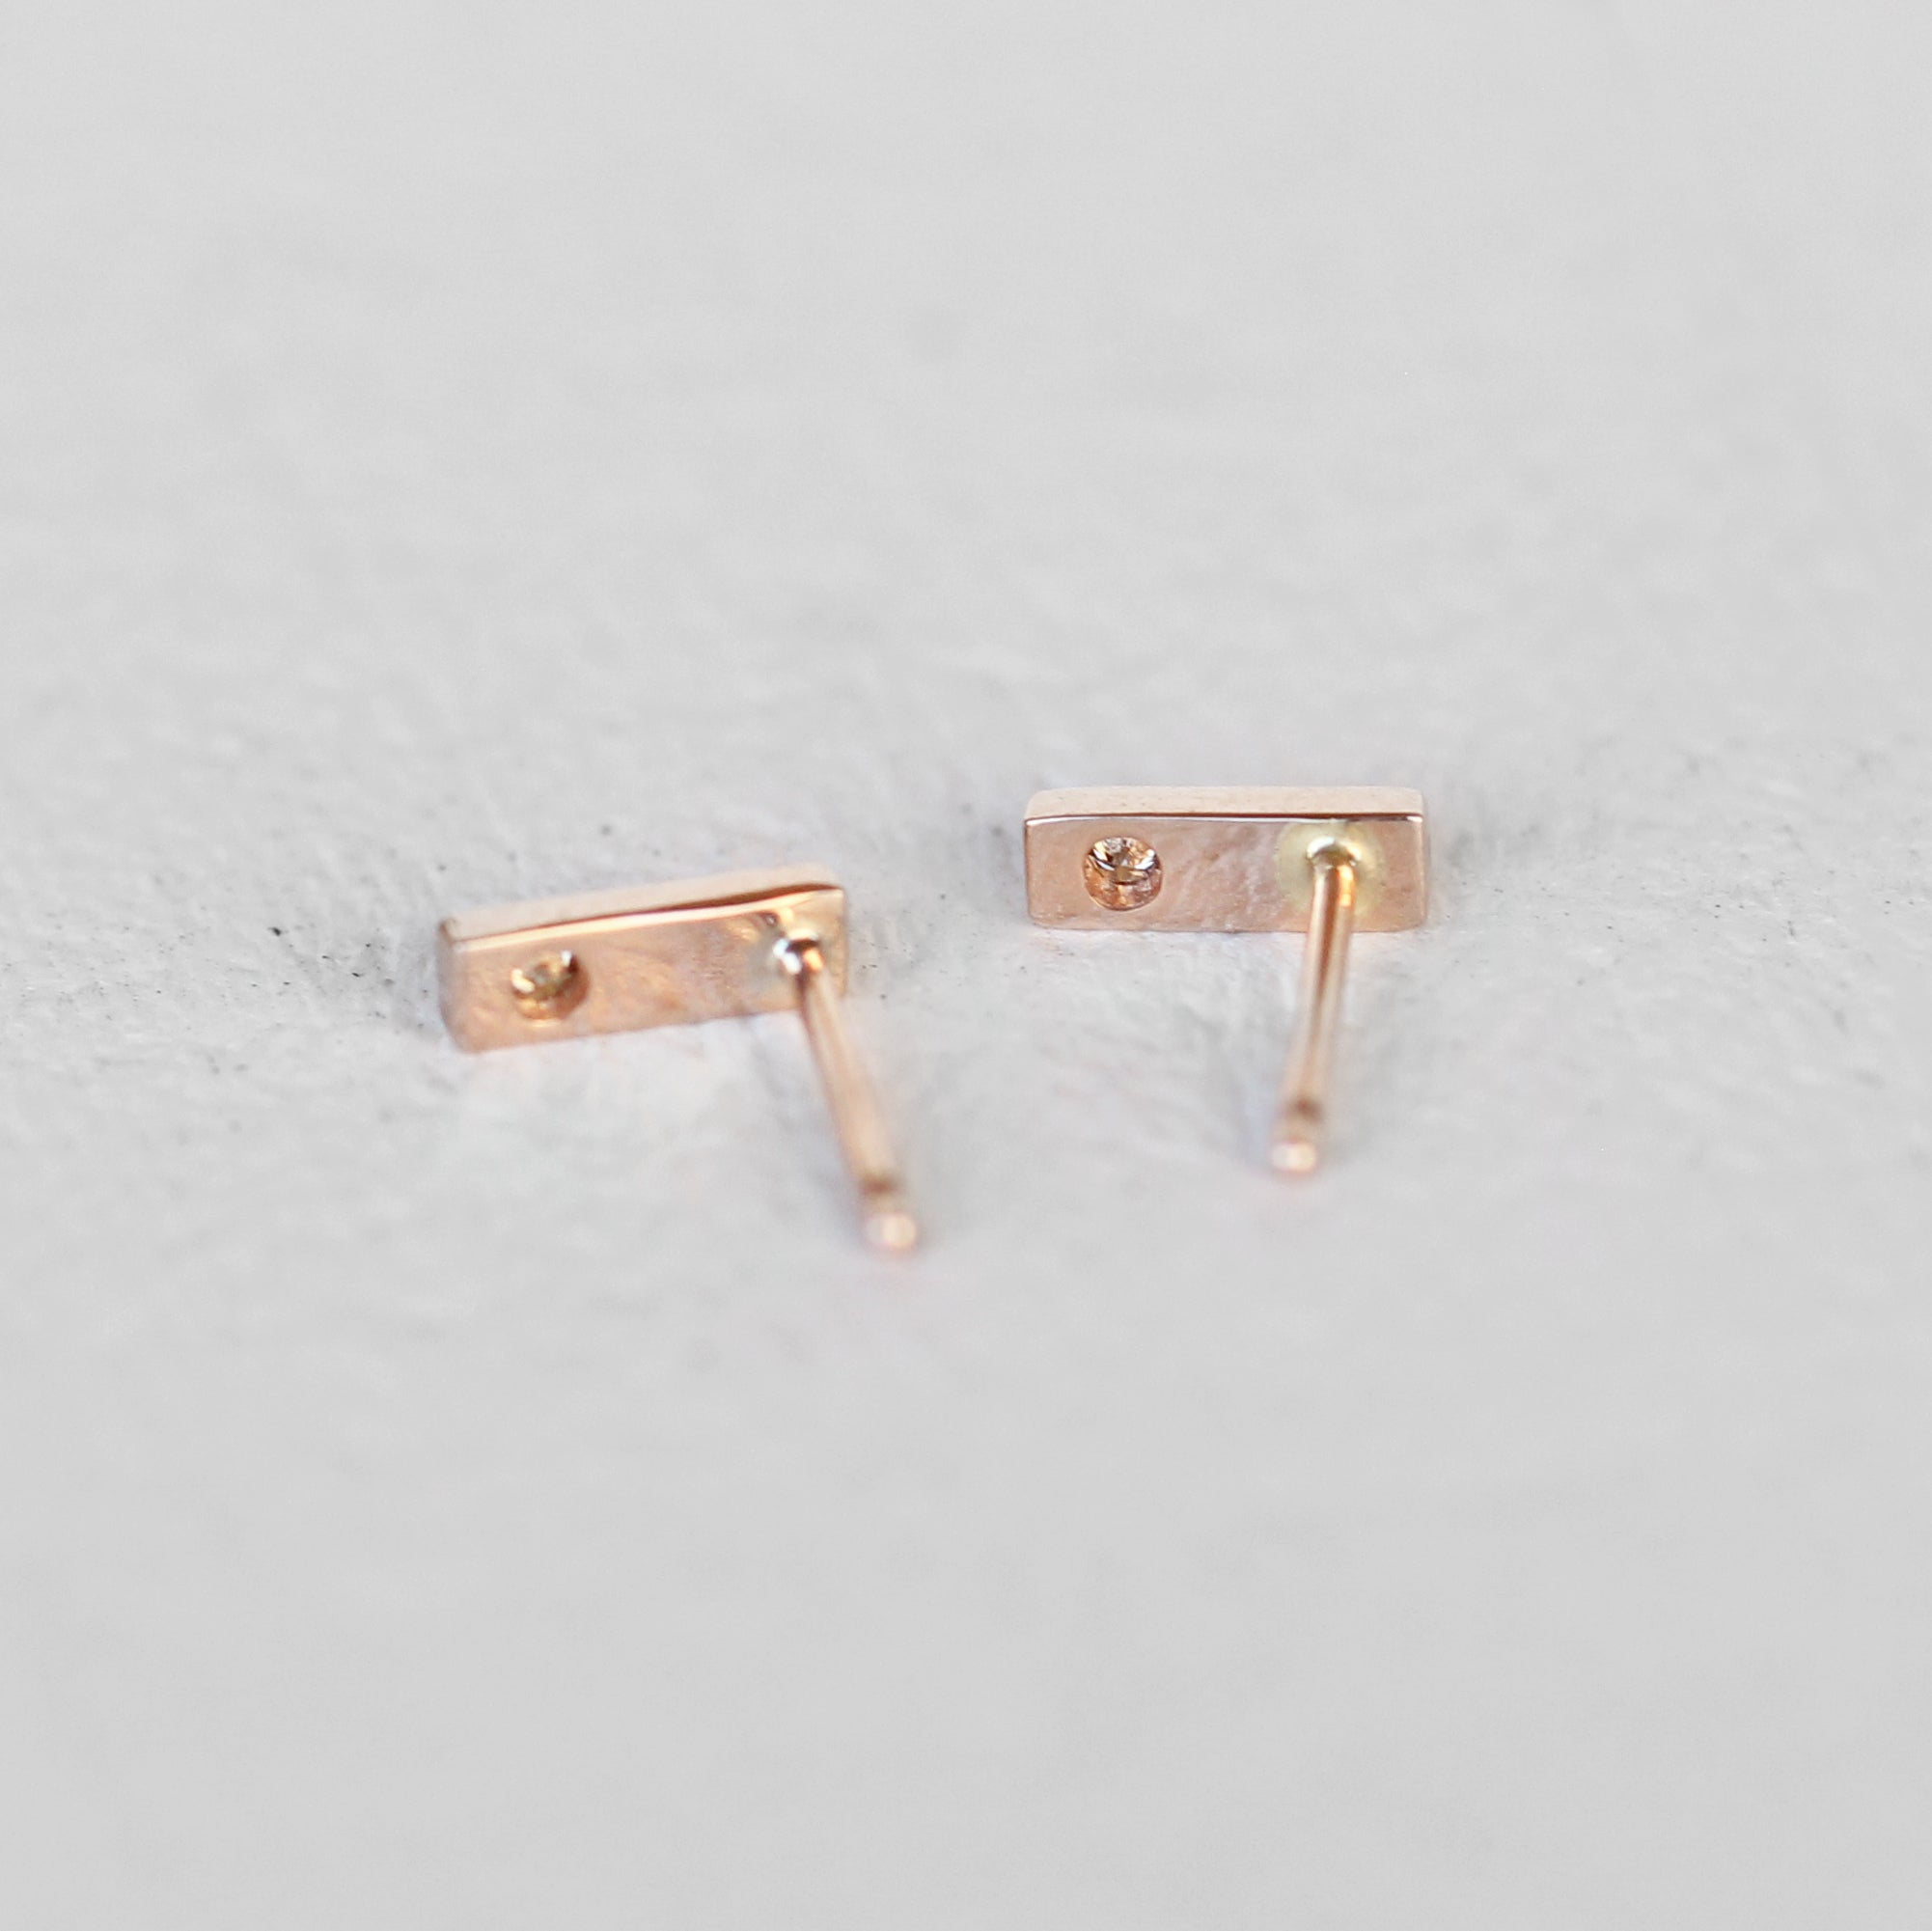 14k Rose Gold Chantell Diamond Earrings - Ready to Ship - Midwinter Co. Alternative Bridal Rings and Modern Fine Jewelry